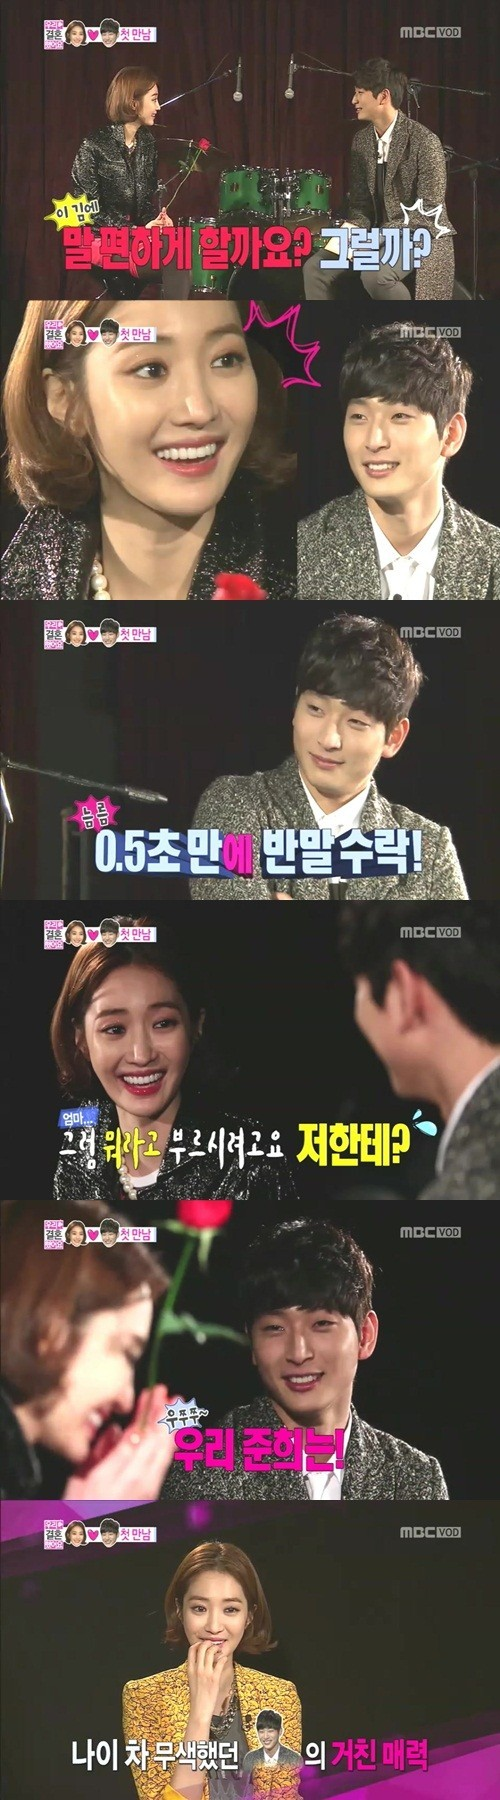 'We Got Married' 2AM's Jinwoon and Go Jun Hee's Nervous Frist Meeting